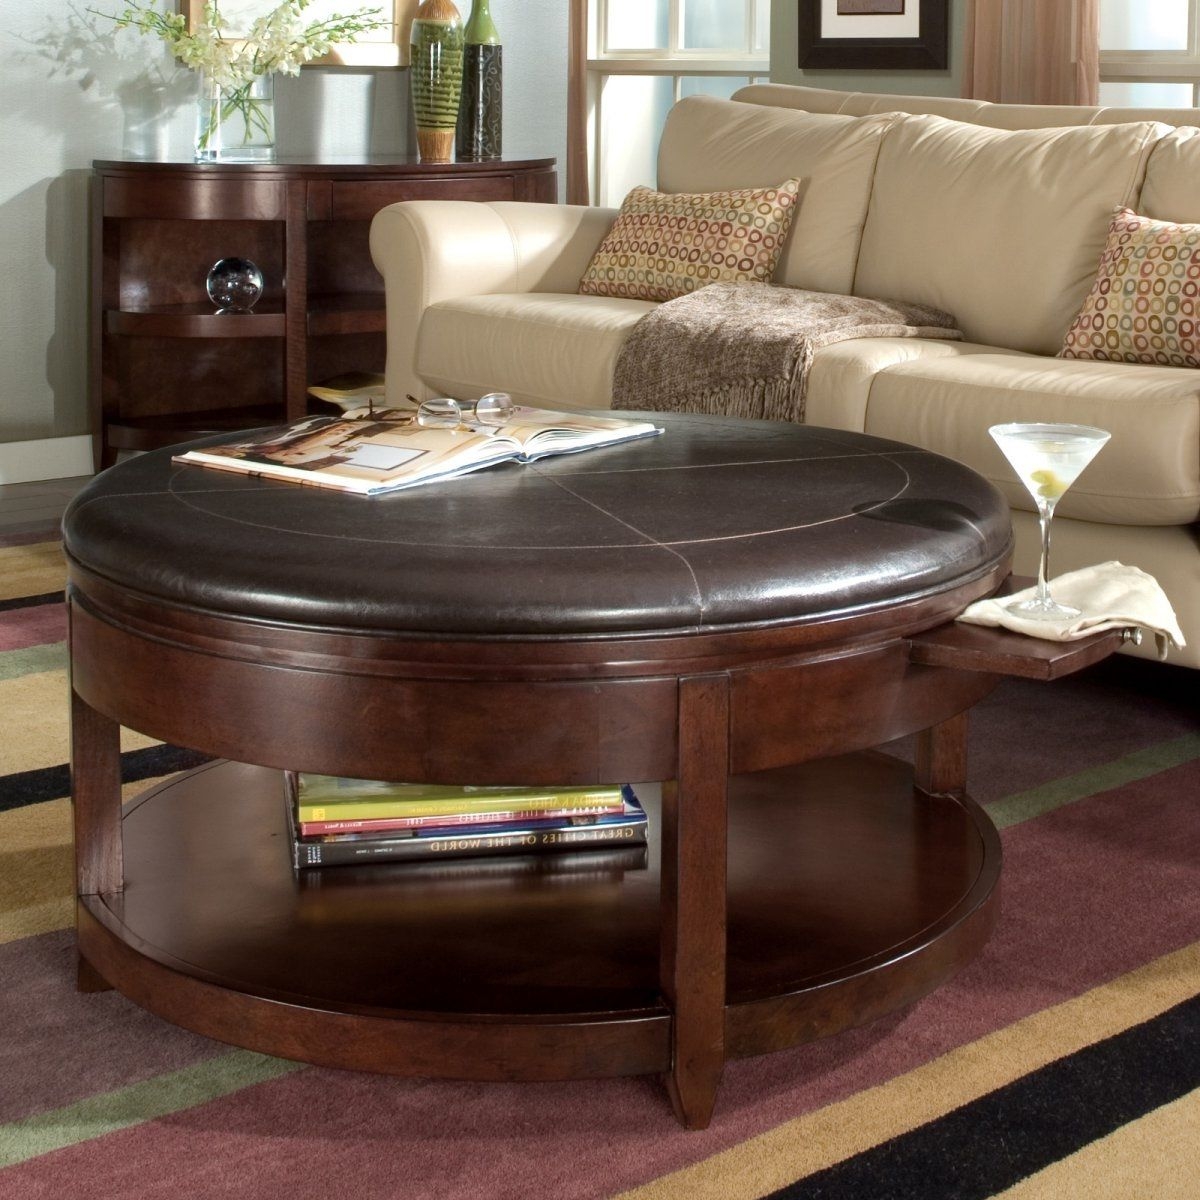 Round leather ottoman with storage zab living dream home round leather ottoman coffee table with storage zab living round leather ottoman coffee table with storage zab living round leather ottoman coffee table geotapseo Images